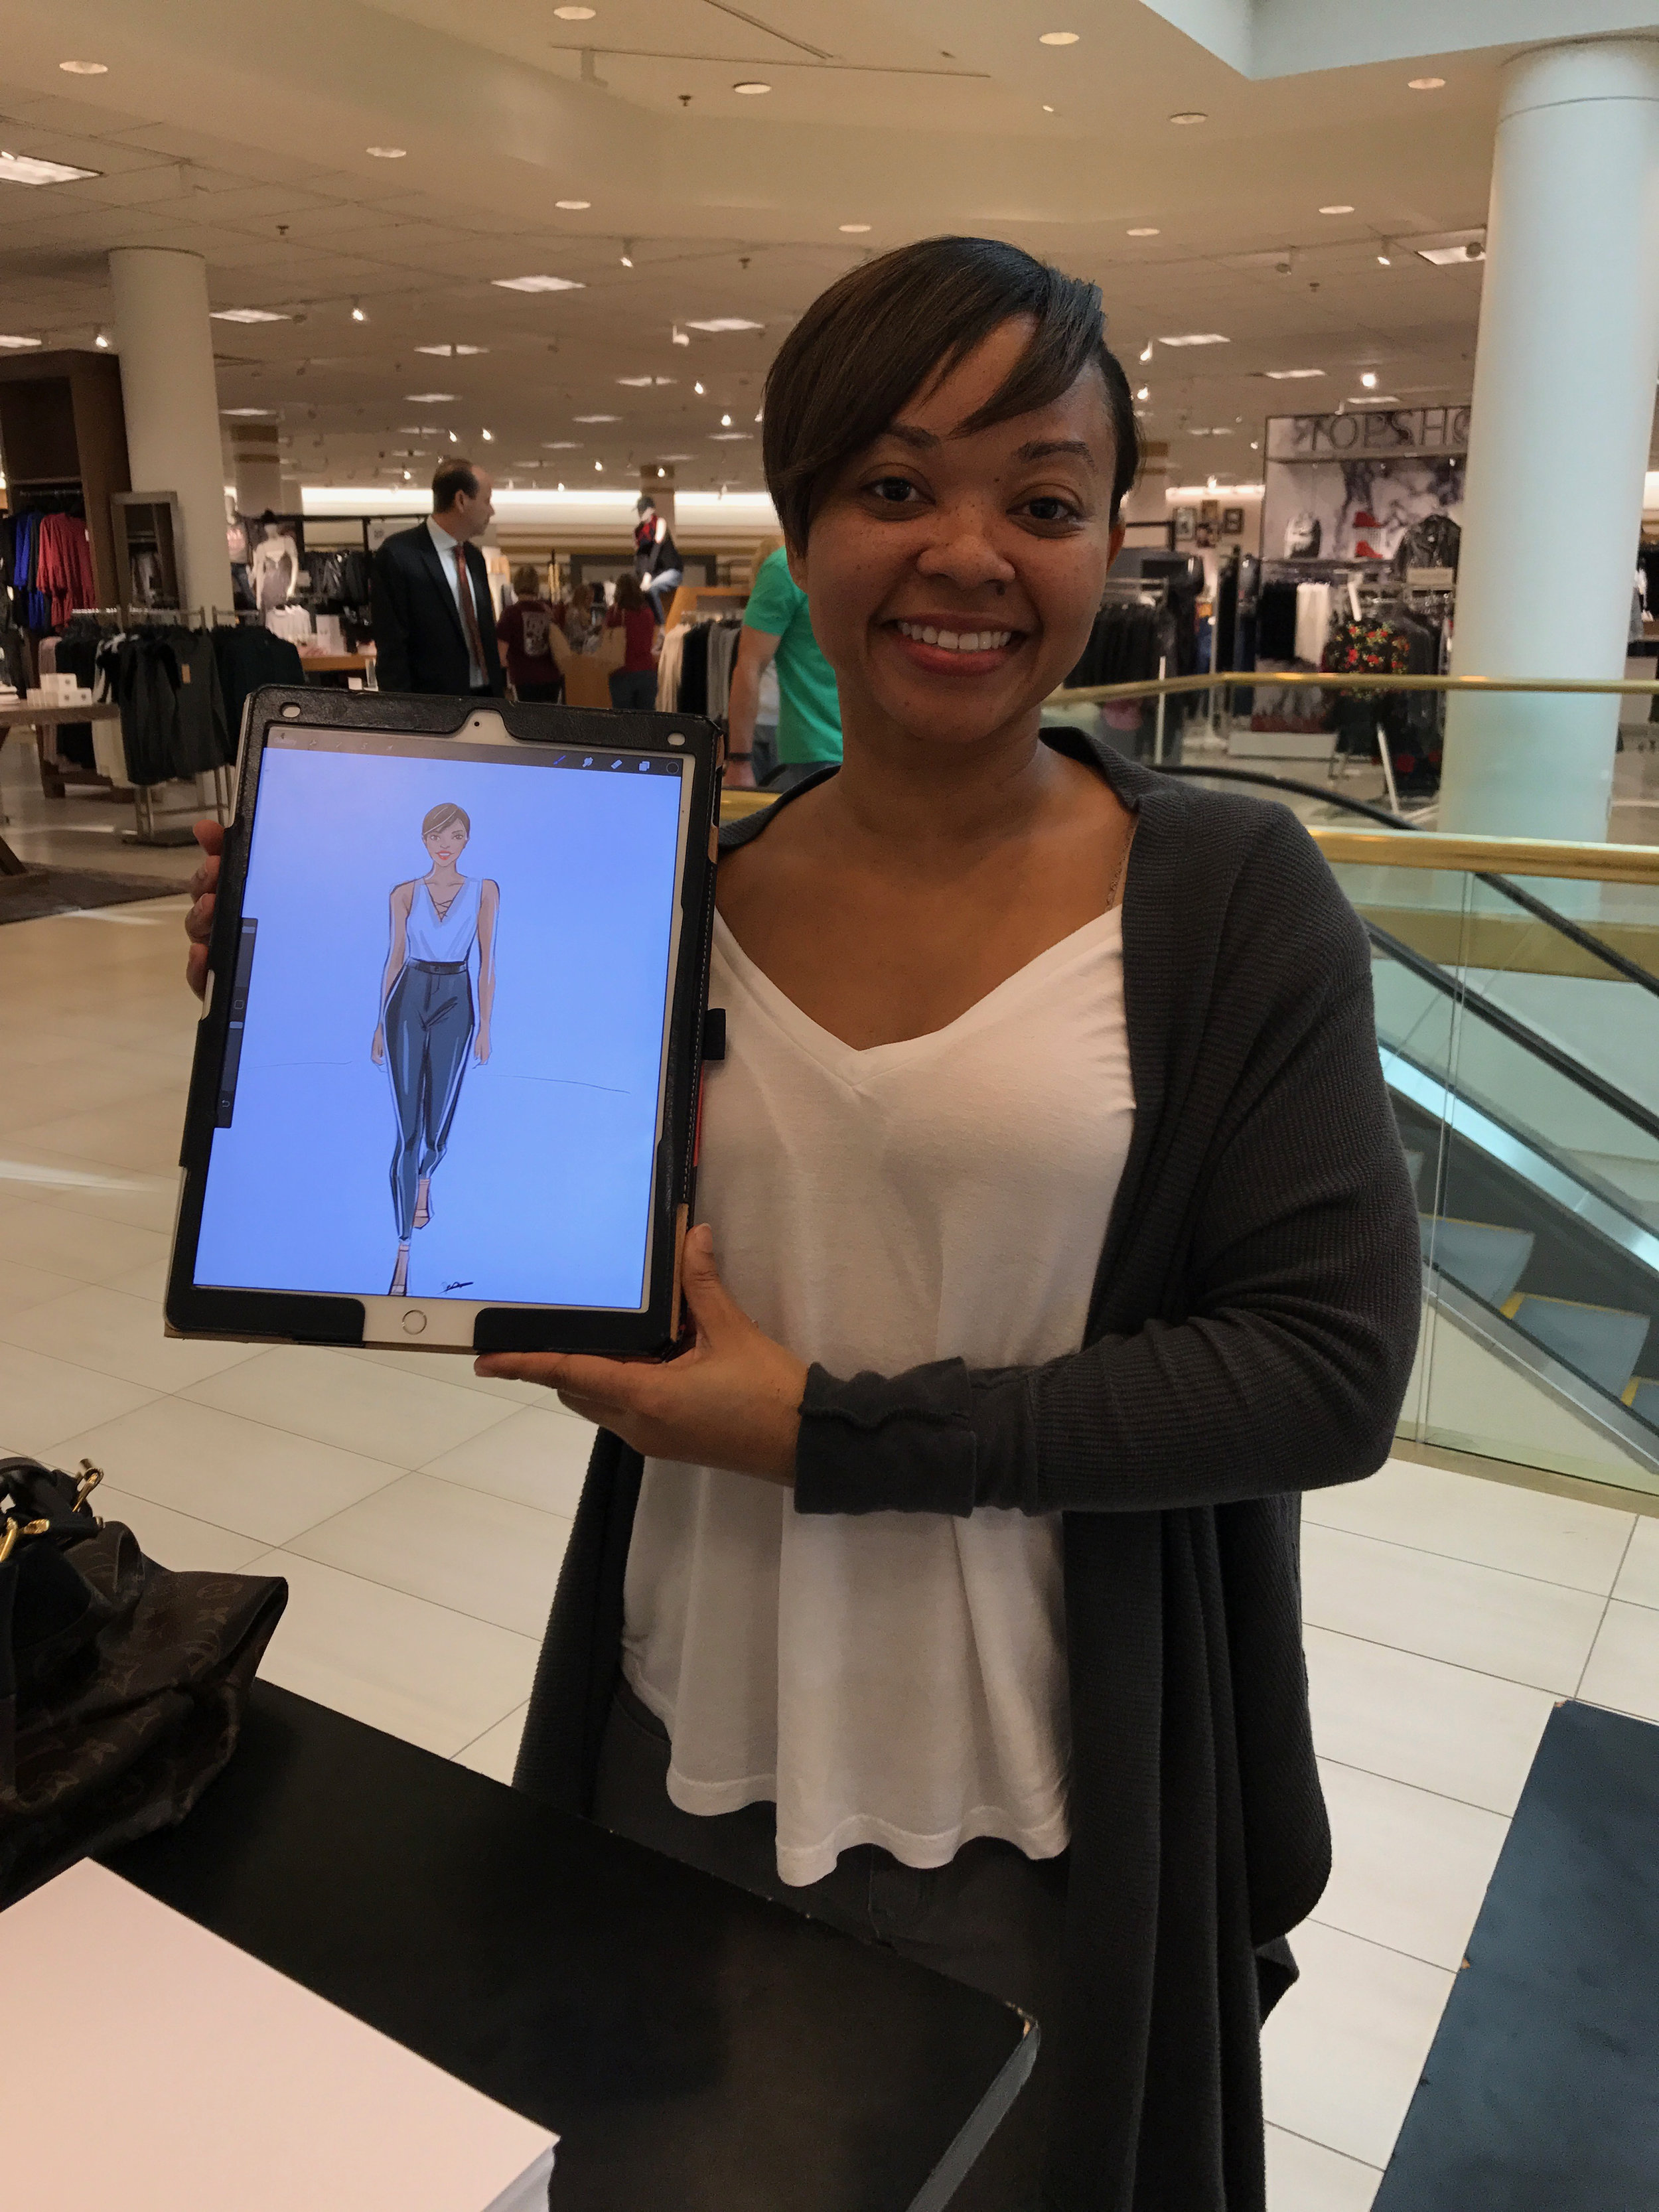 Live fashion sketching at Nordstrom dallas event by Rongrong DeVoe.JPG